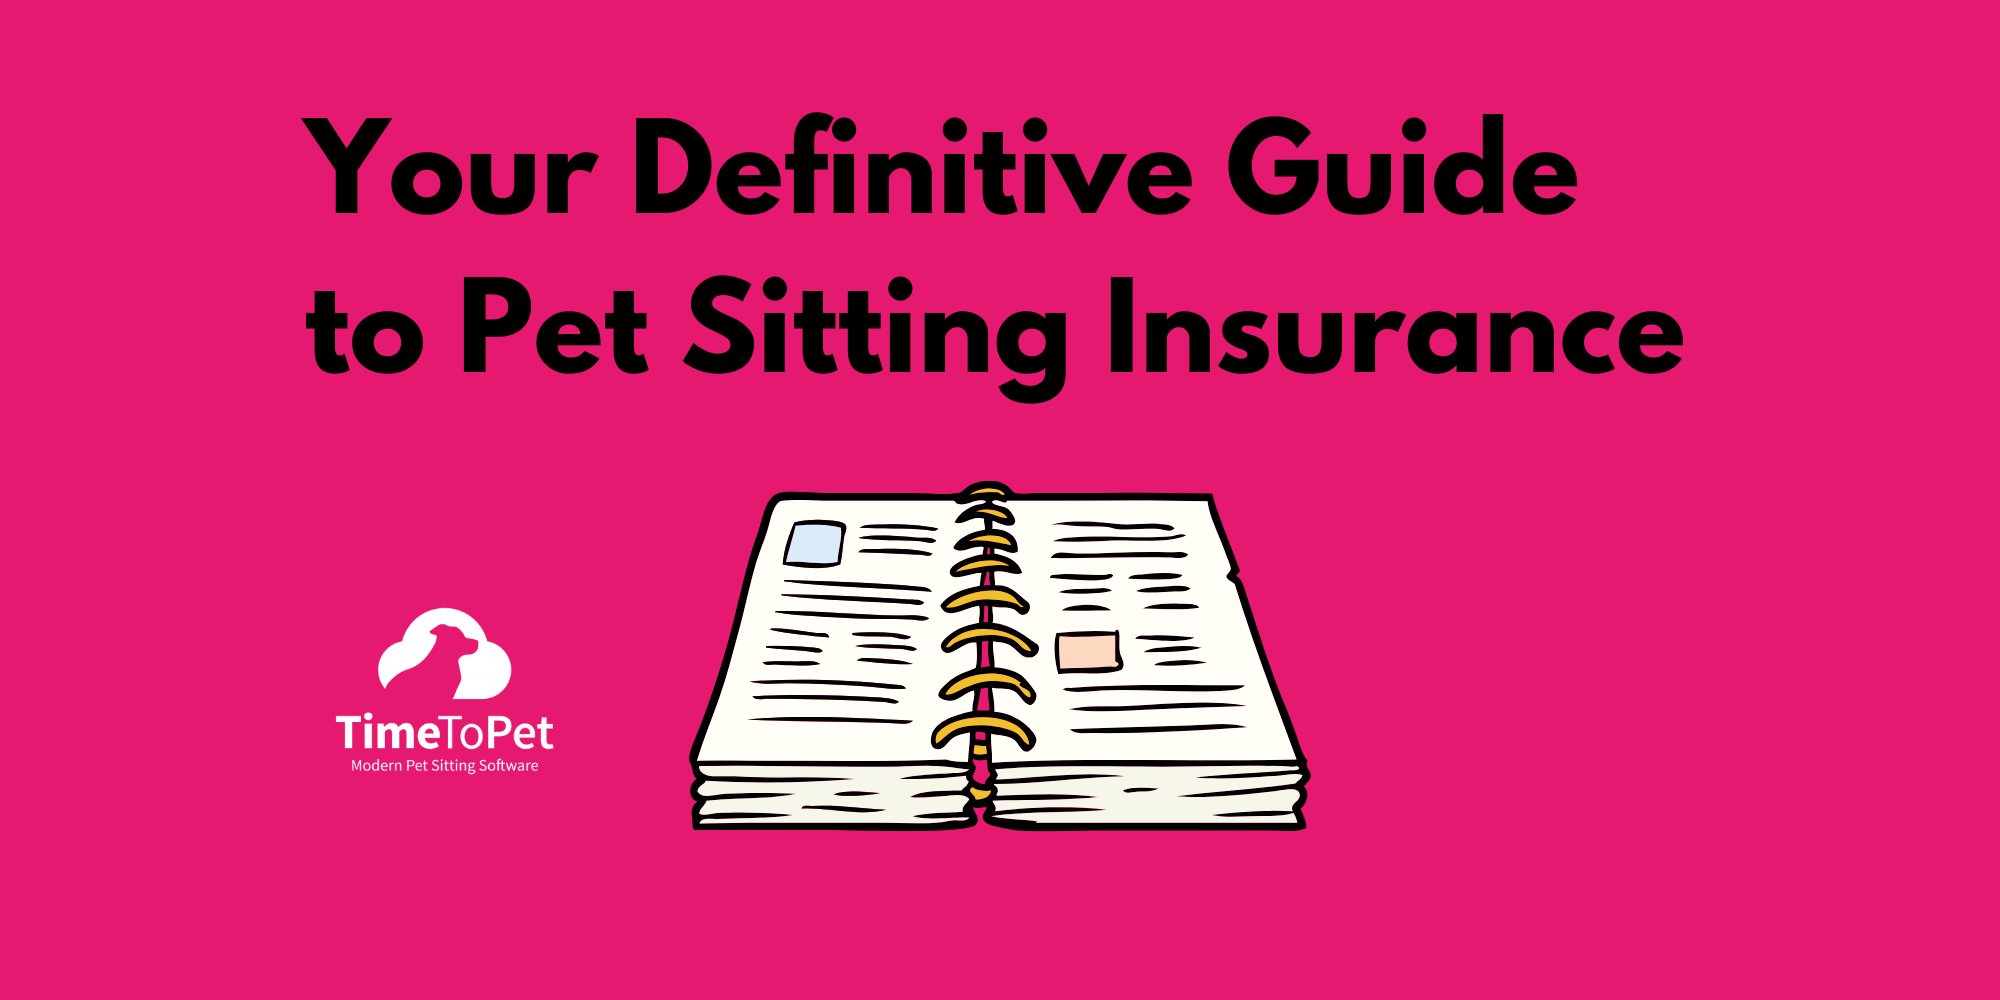 Definitive guide to pet sitting insurance image